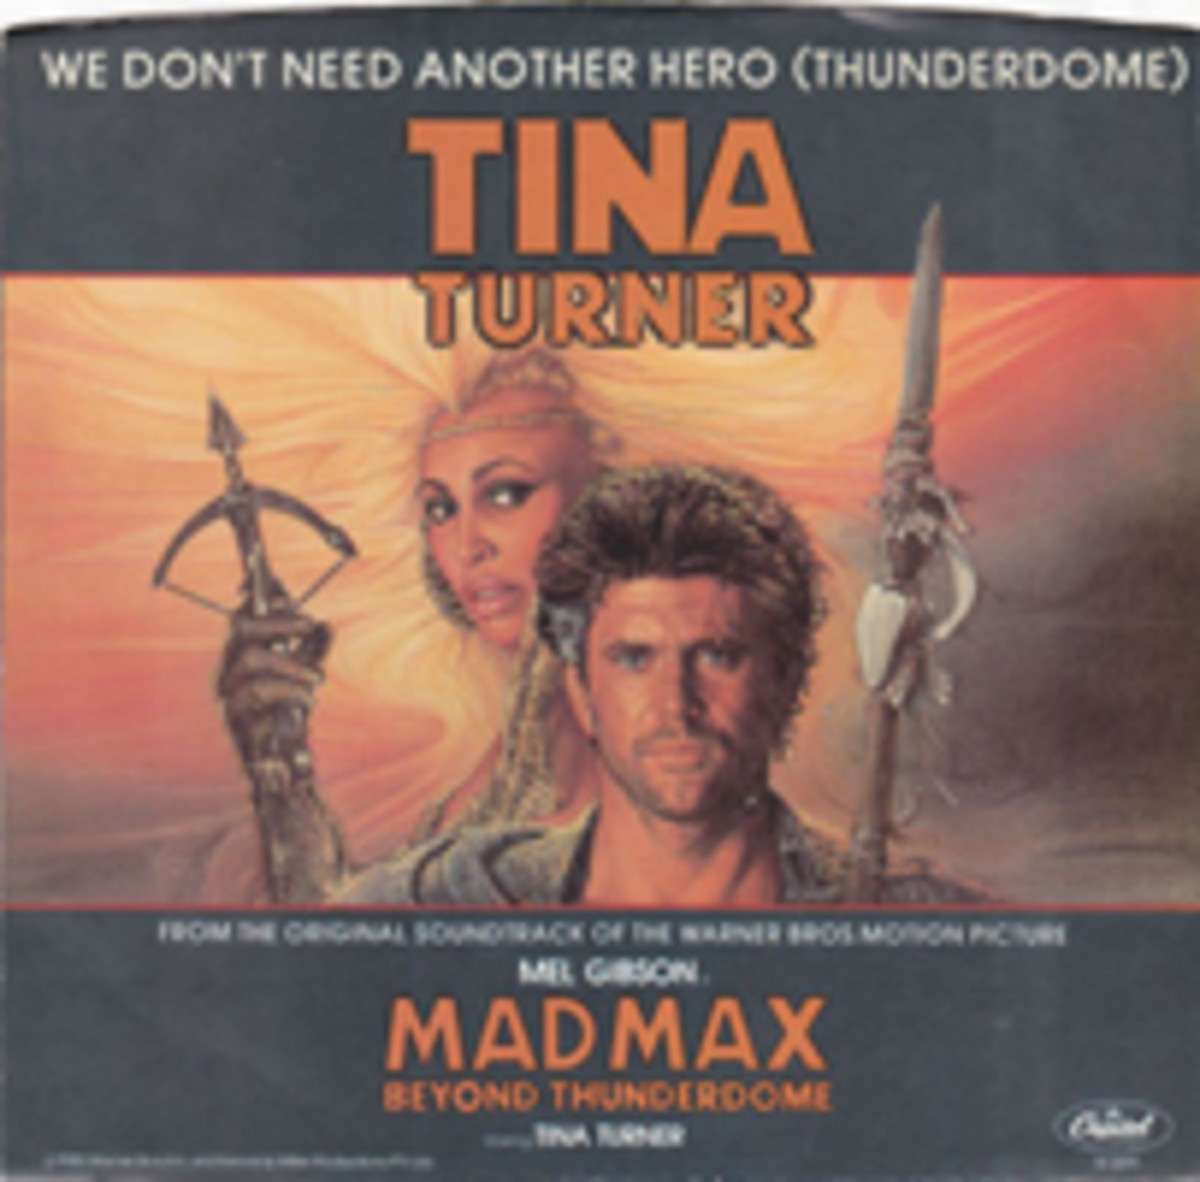 Tina Turner We Don't Need Another Hero picture sleeve